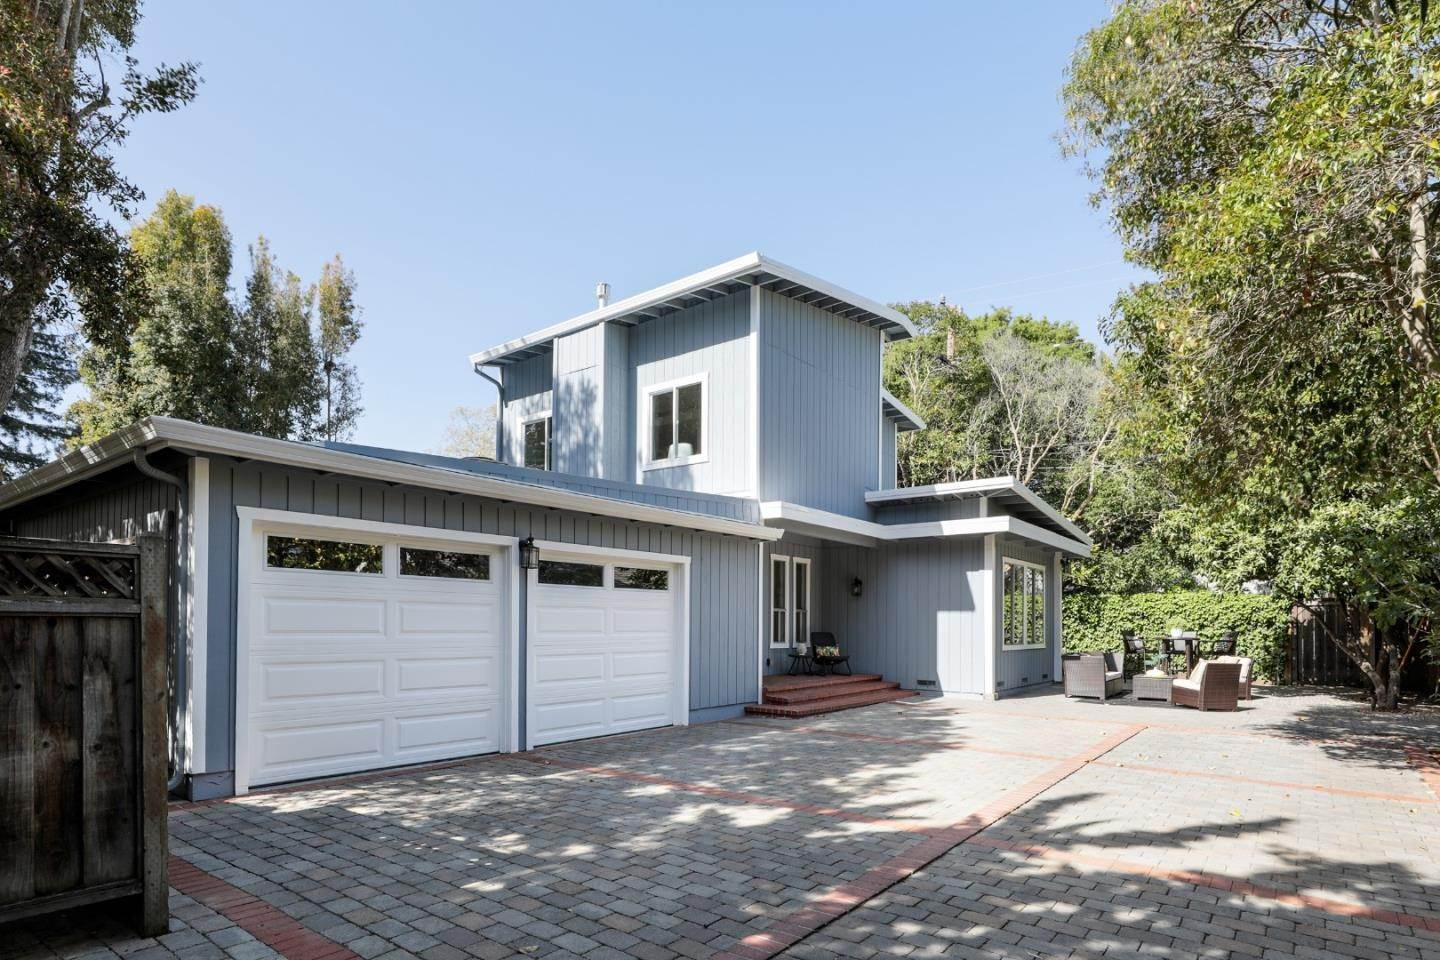 Single Family Homes for Sale at 419 Laurel Avenue Menlo Park, California 94025 United States